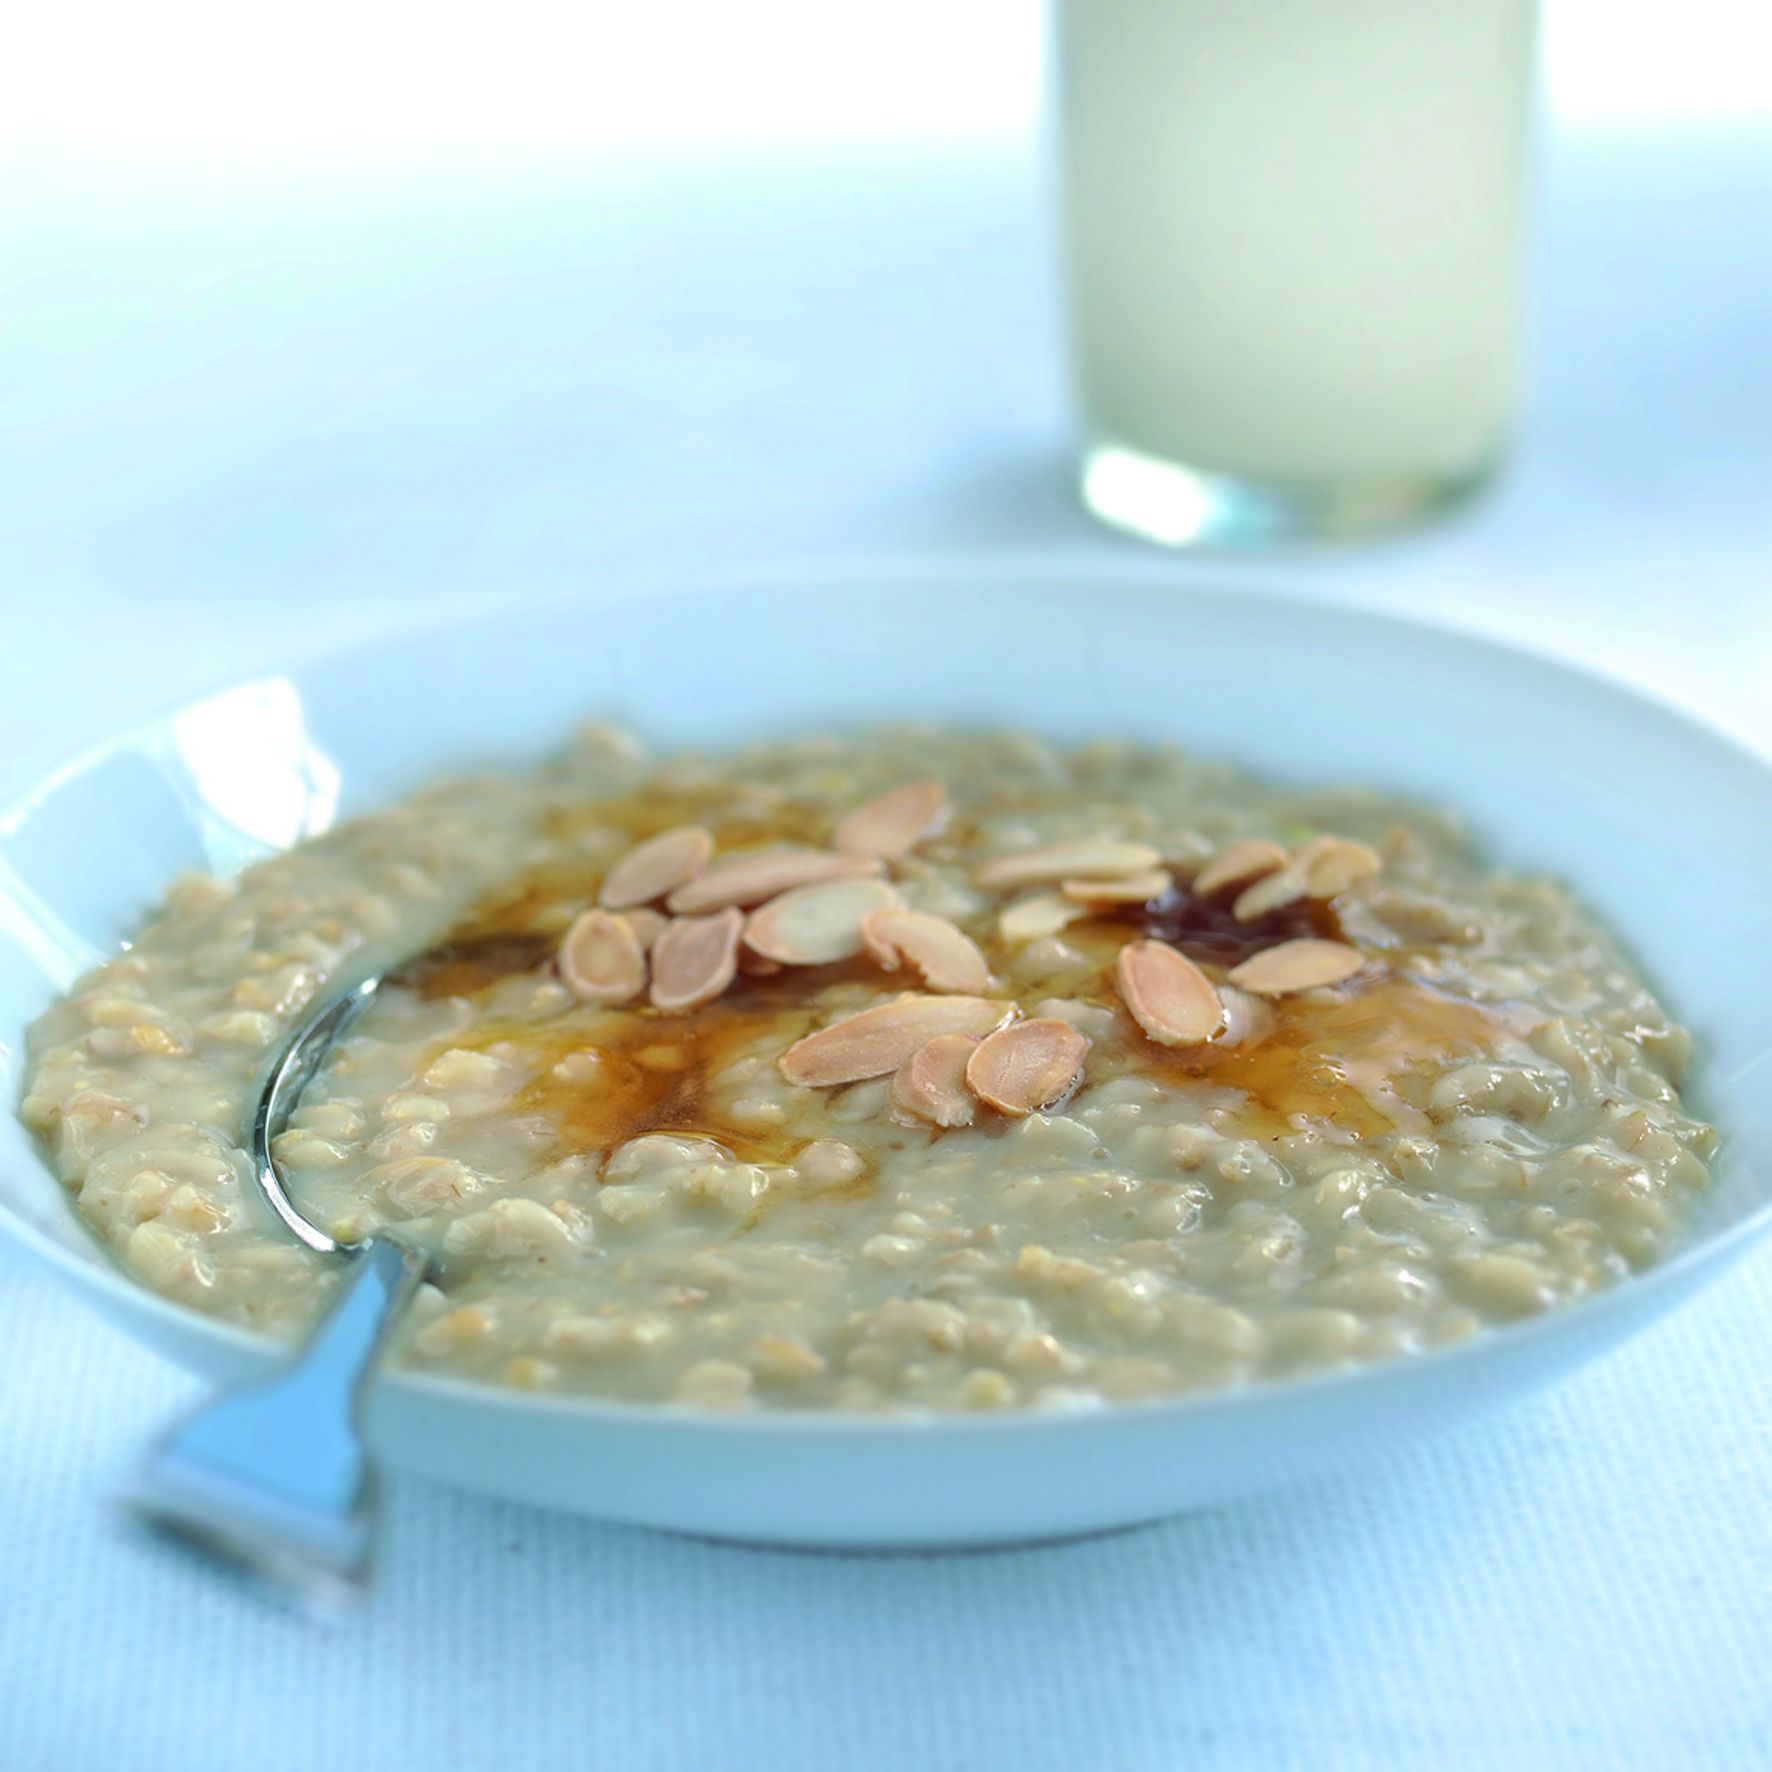 Lower your Cholesterol naturally with Food!